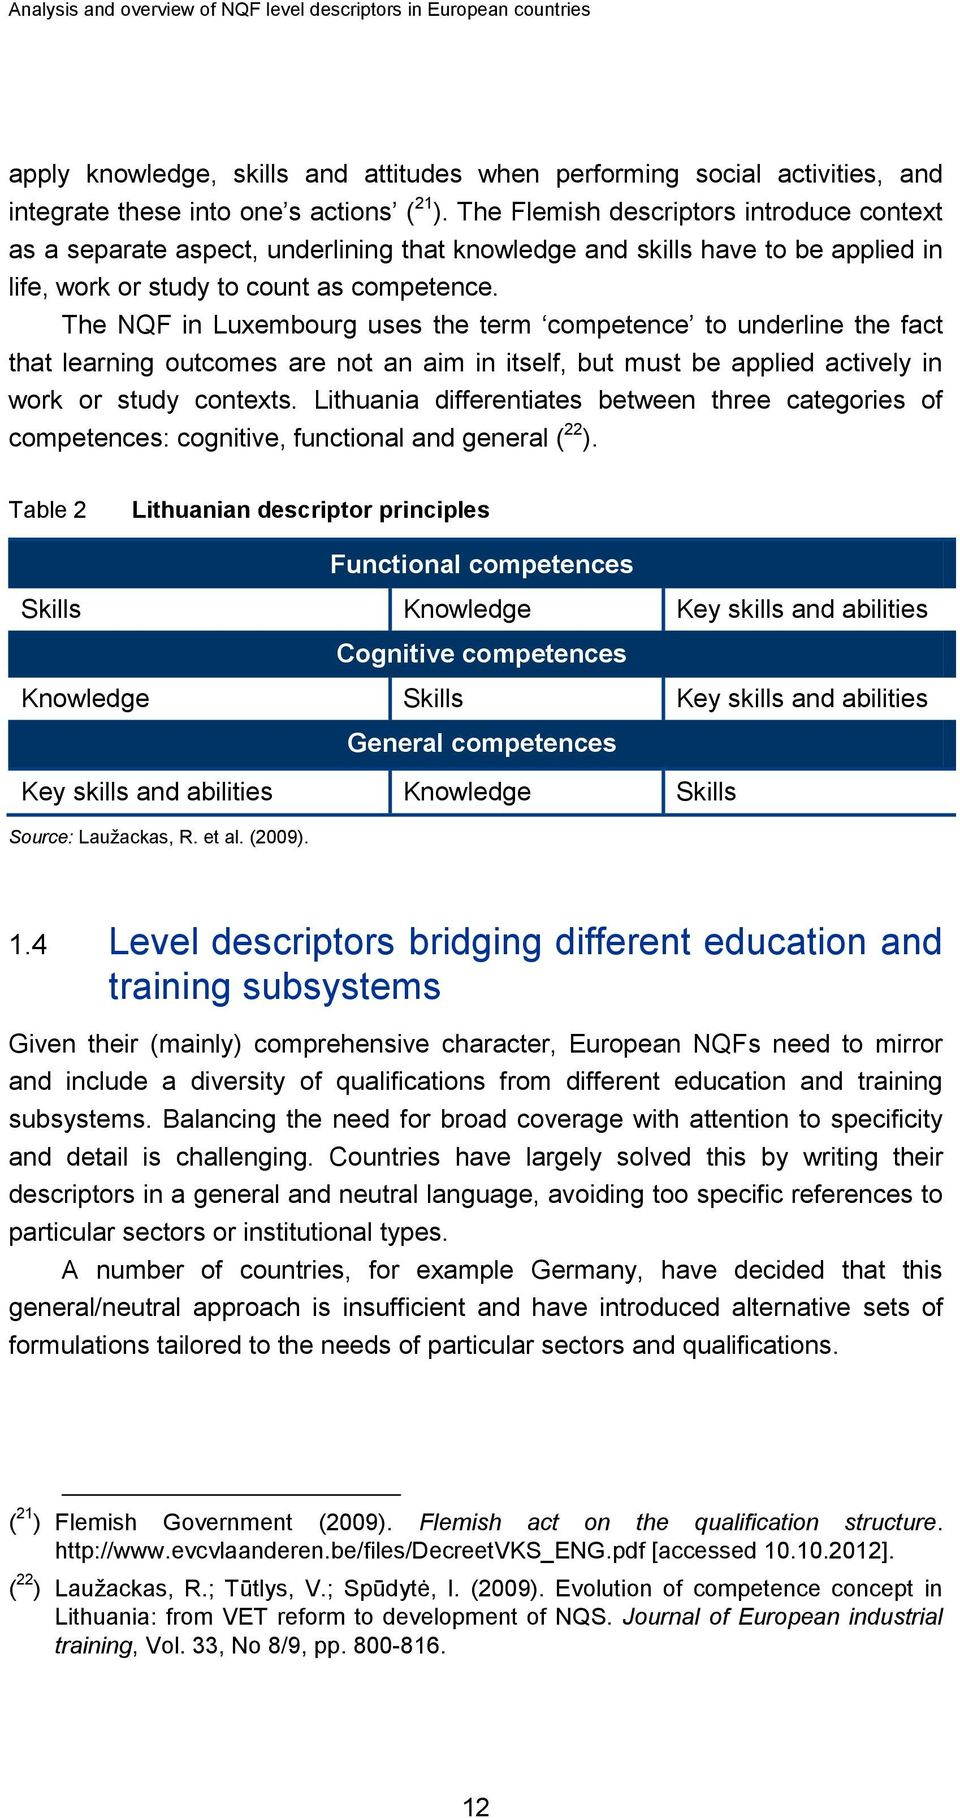 The NQF in Luxembourg uses the term competence to underline the fact that learning outcomes are not an aim in itself, but must be applied actively in work or study contexts.